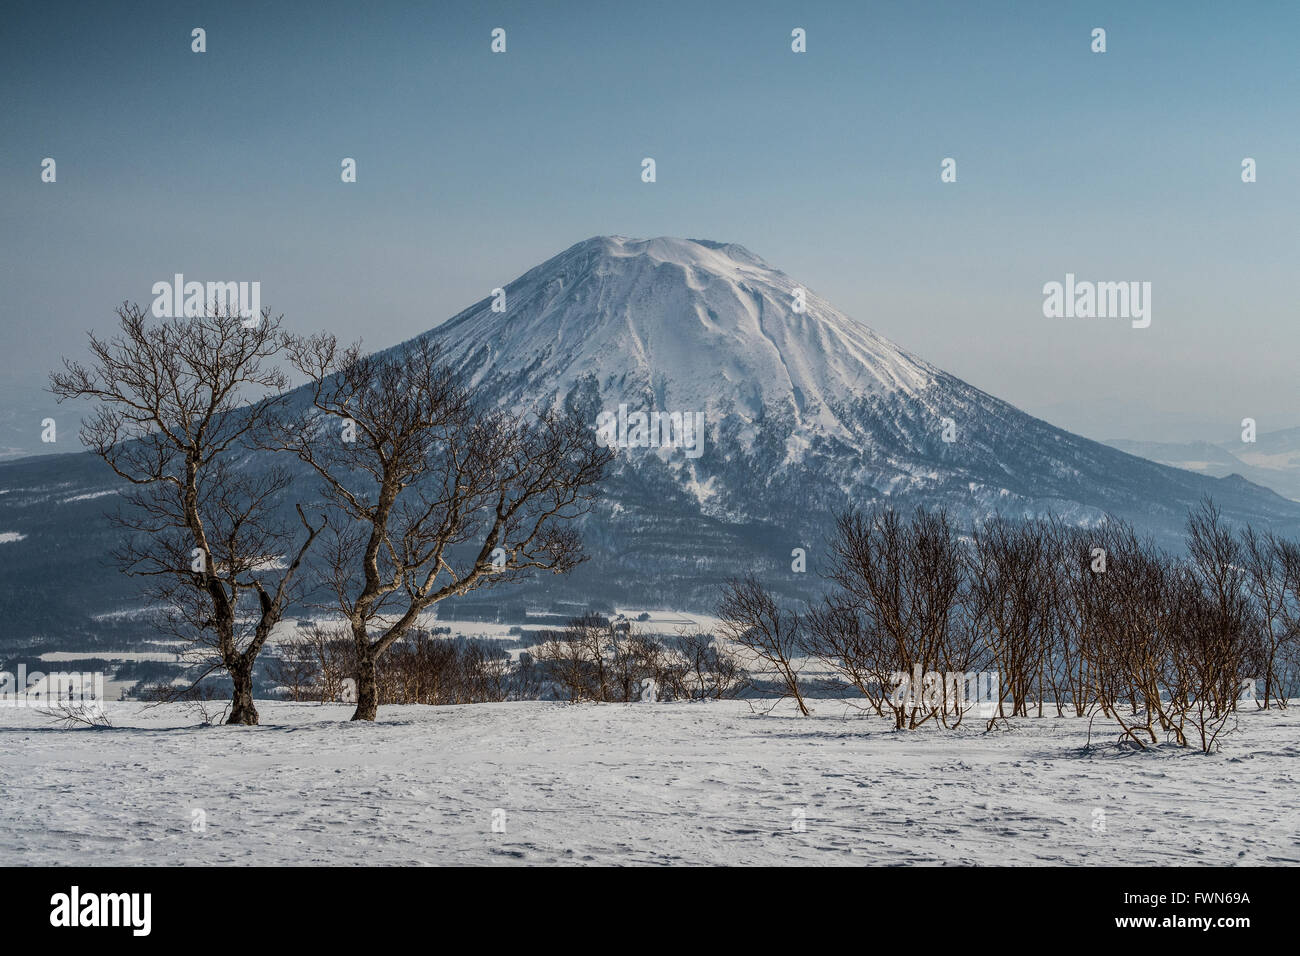 Mount Yōtei, an inactive volcano located in Shikotsu-Toya National Park, Hokkaidō, Japan. - Stock Image